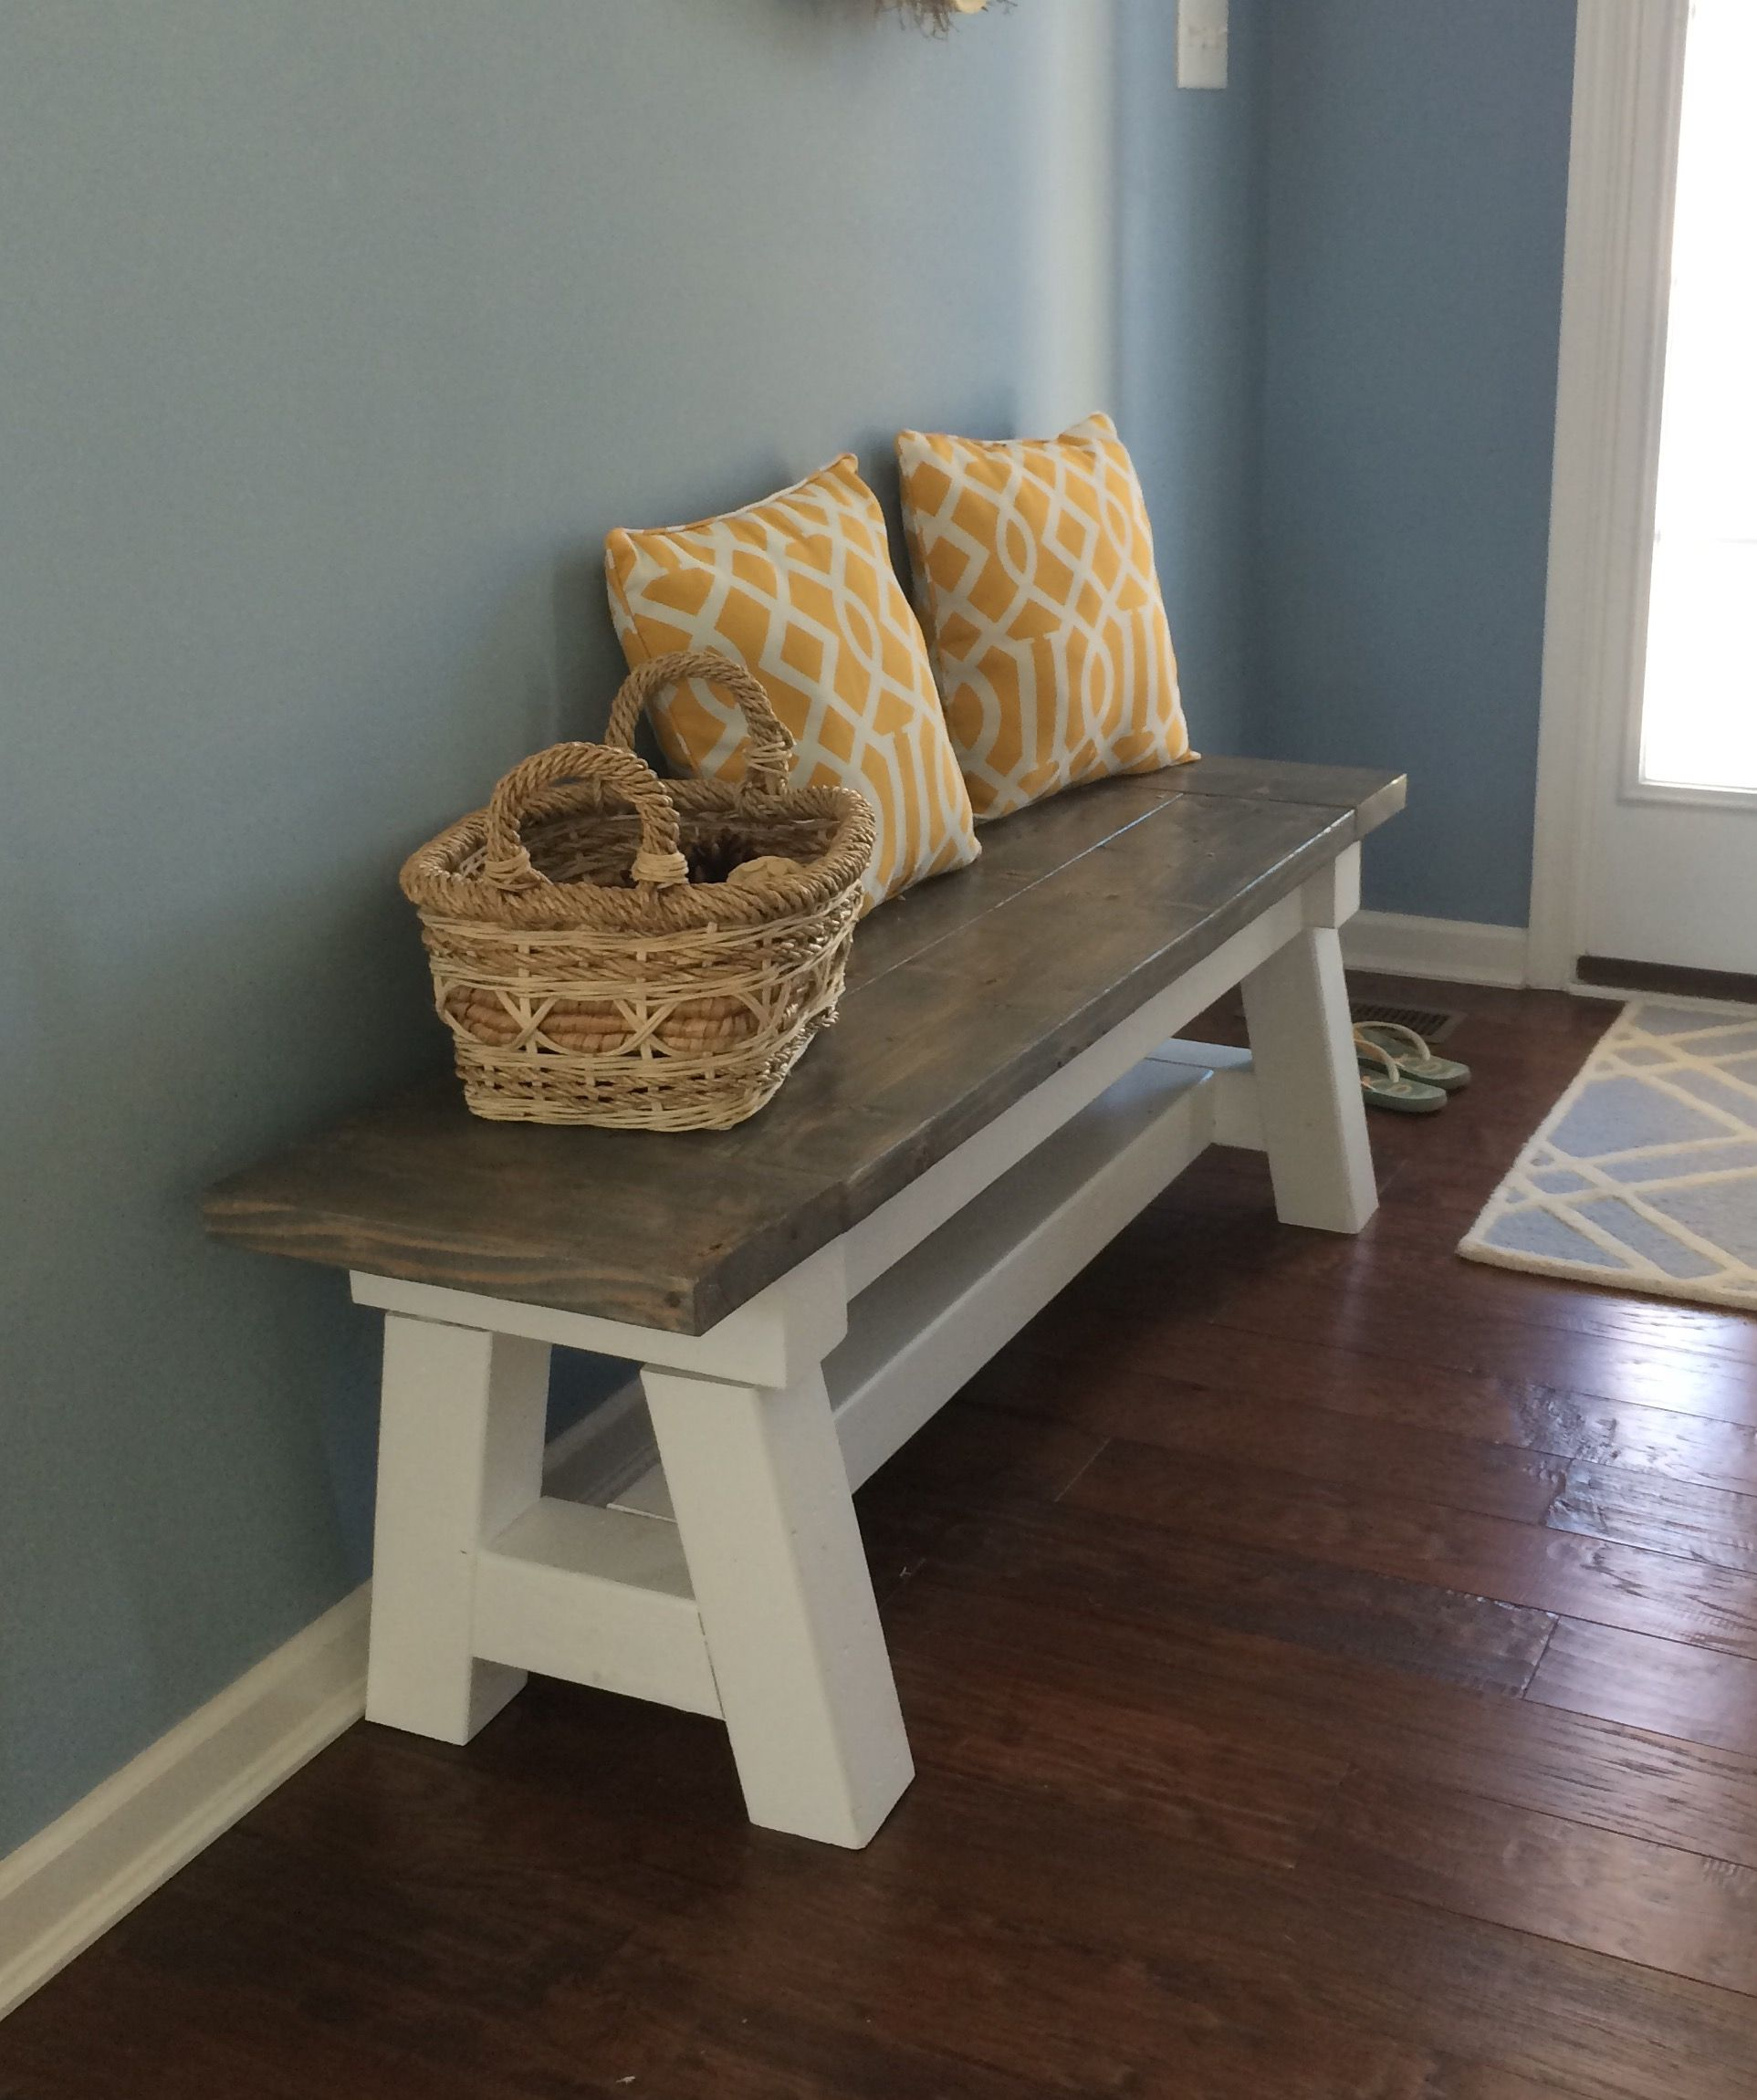 Beach Bench Do It Yourself Home Projects from Ana White